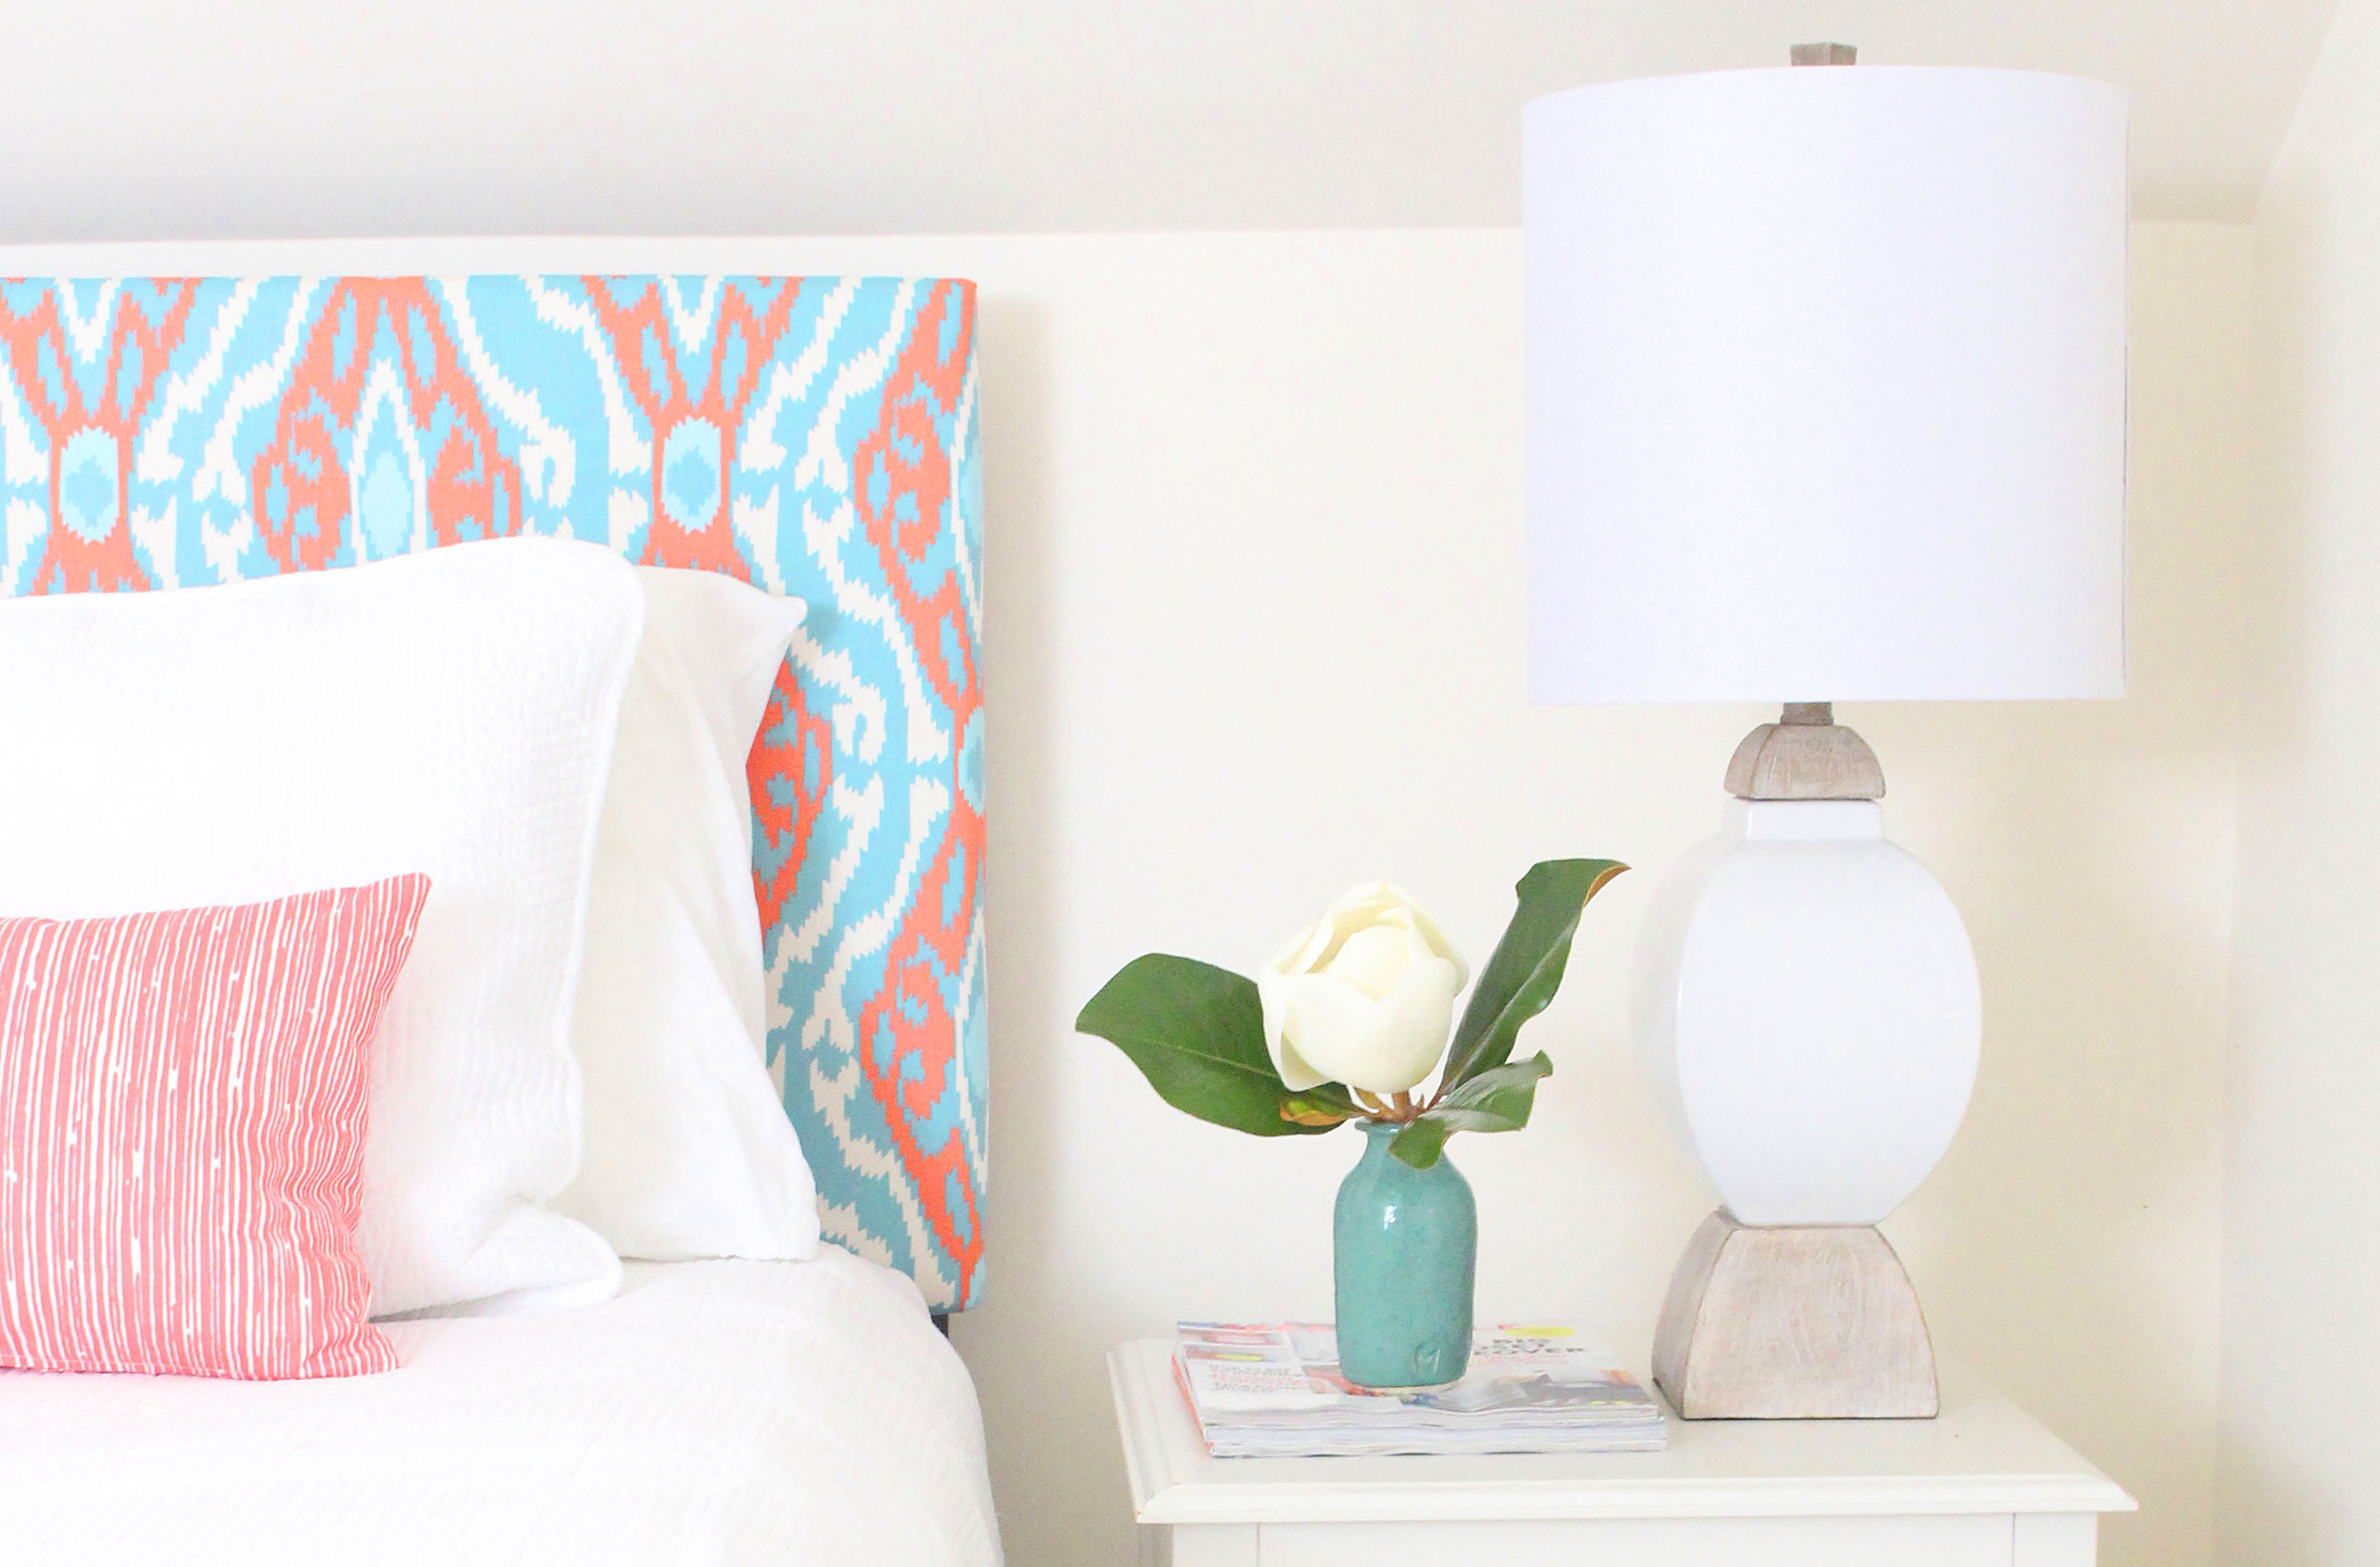 5 Home Decor Items You Shouldn't Spend Money On | Number 1: Lighting | Affordable decorating, budget-friendly decorating tips, budget-friendly design ideas